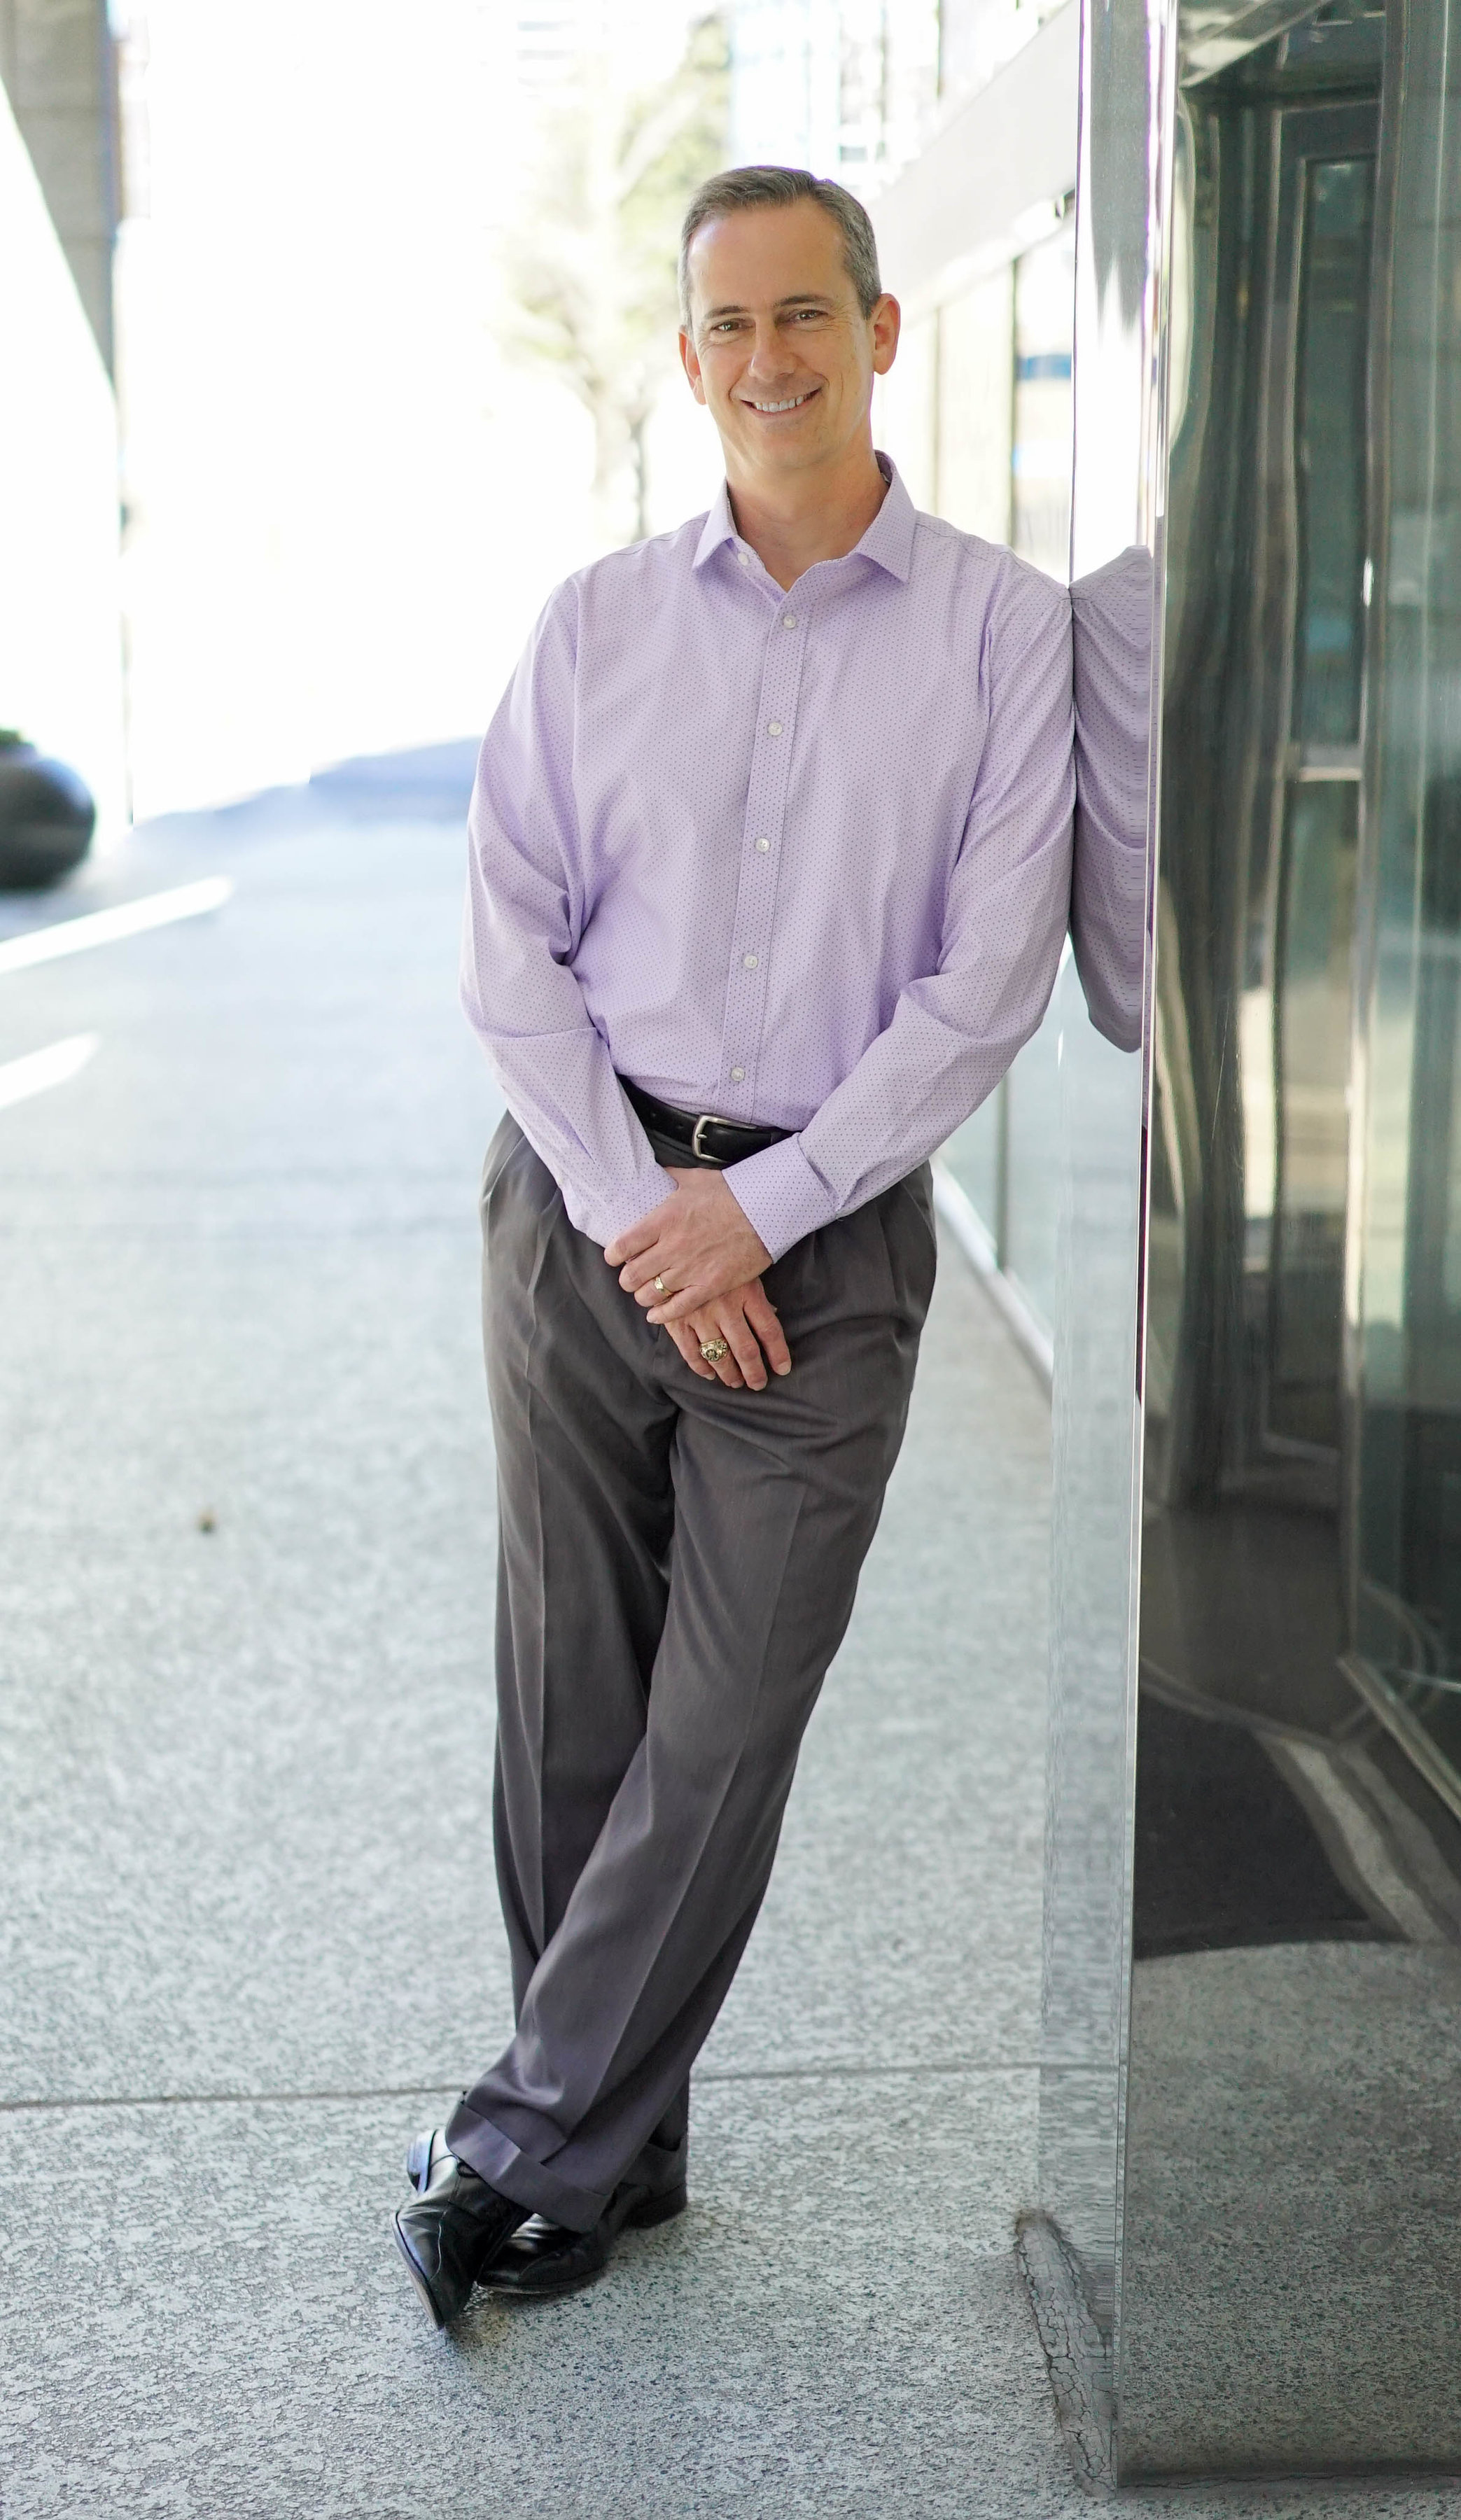 A Caucasian male in a purple polo and gray slacks leaning against a wall smiling for a headshot